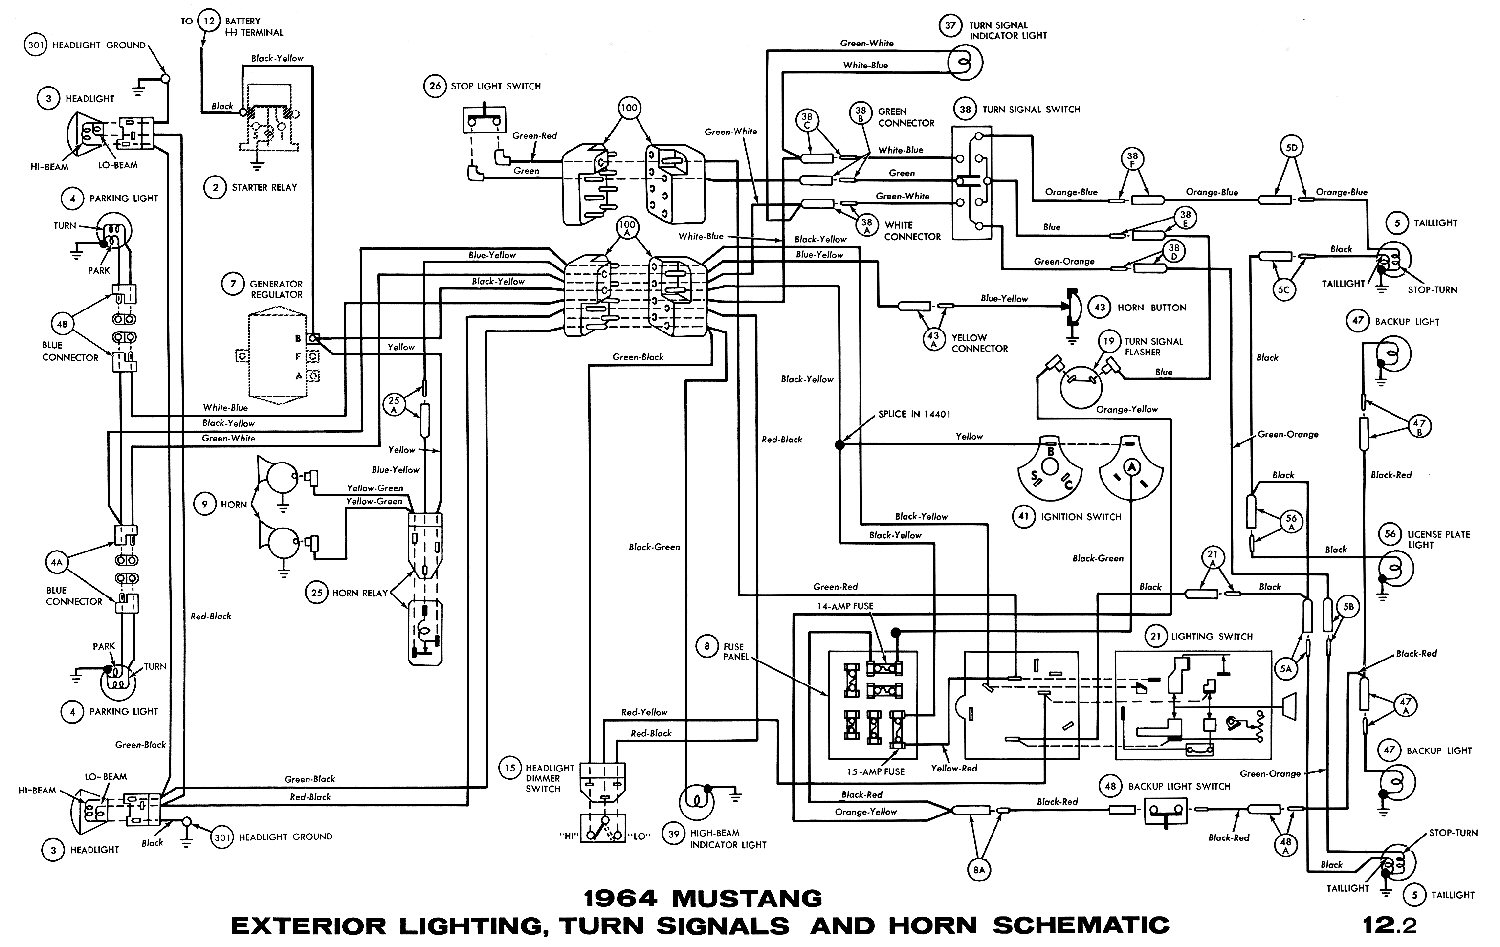 1964i 1964 mustang wiring diagrams average joe restoration 1968 mustang tail light wiring diagram at bakdesigns.co